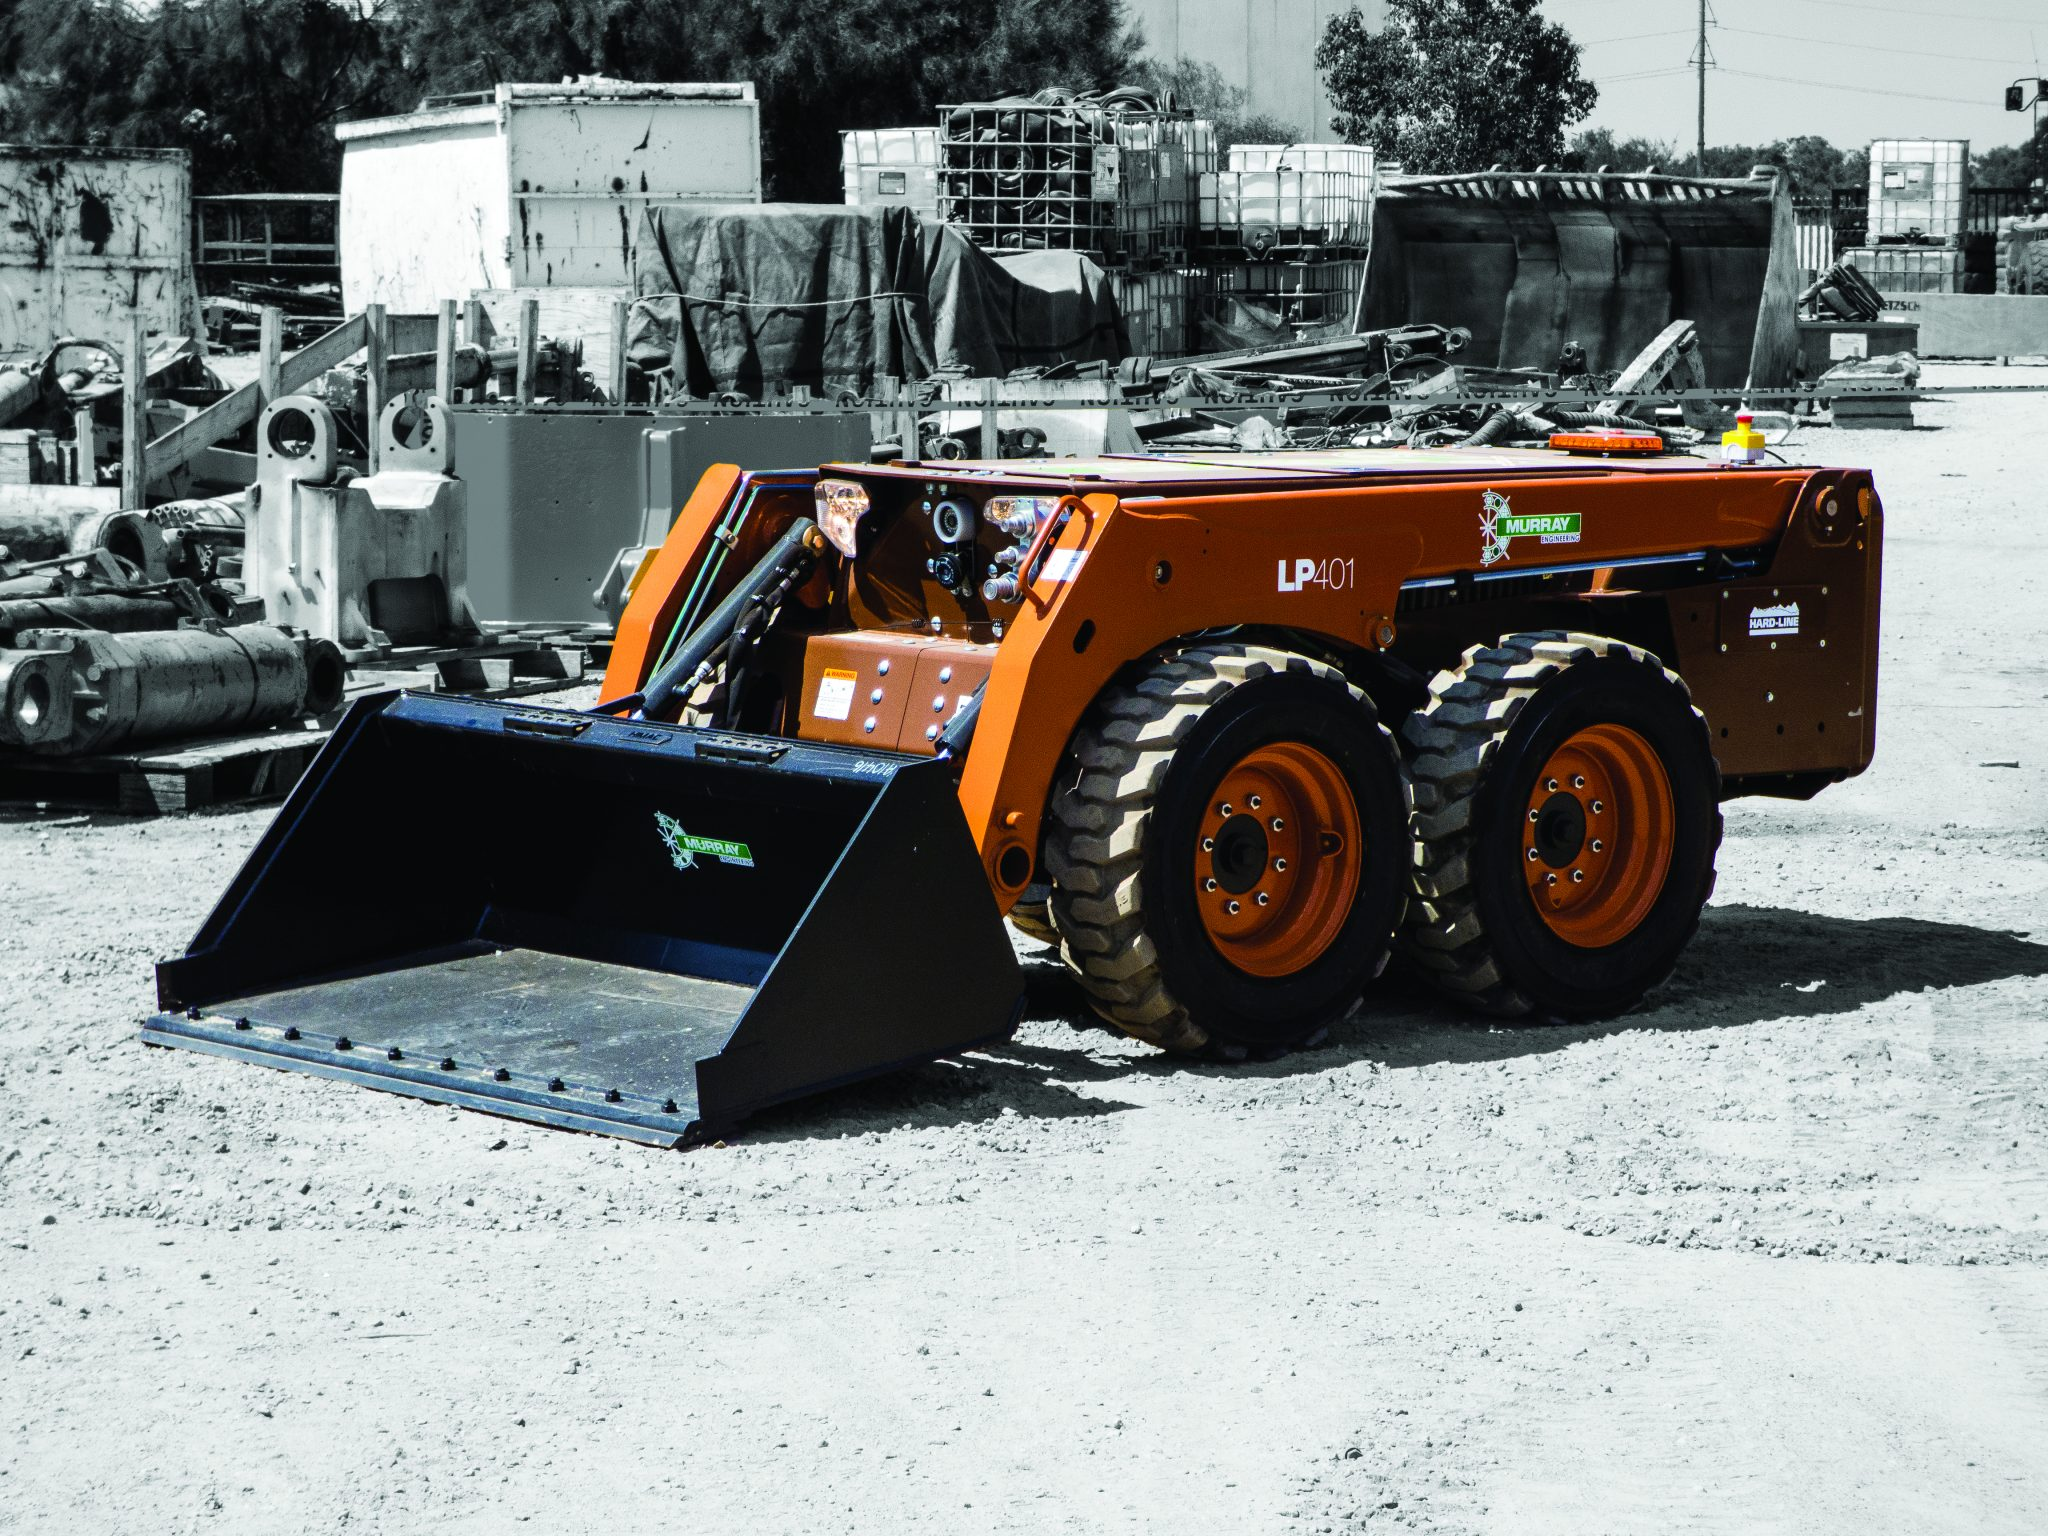 Had-Line LP401 Low Profile Loader